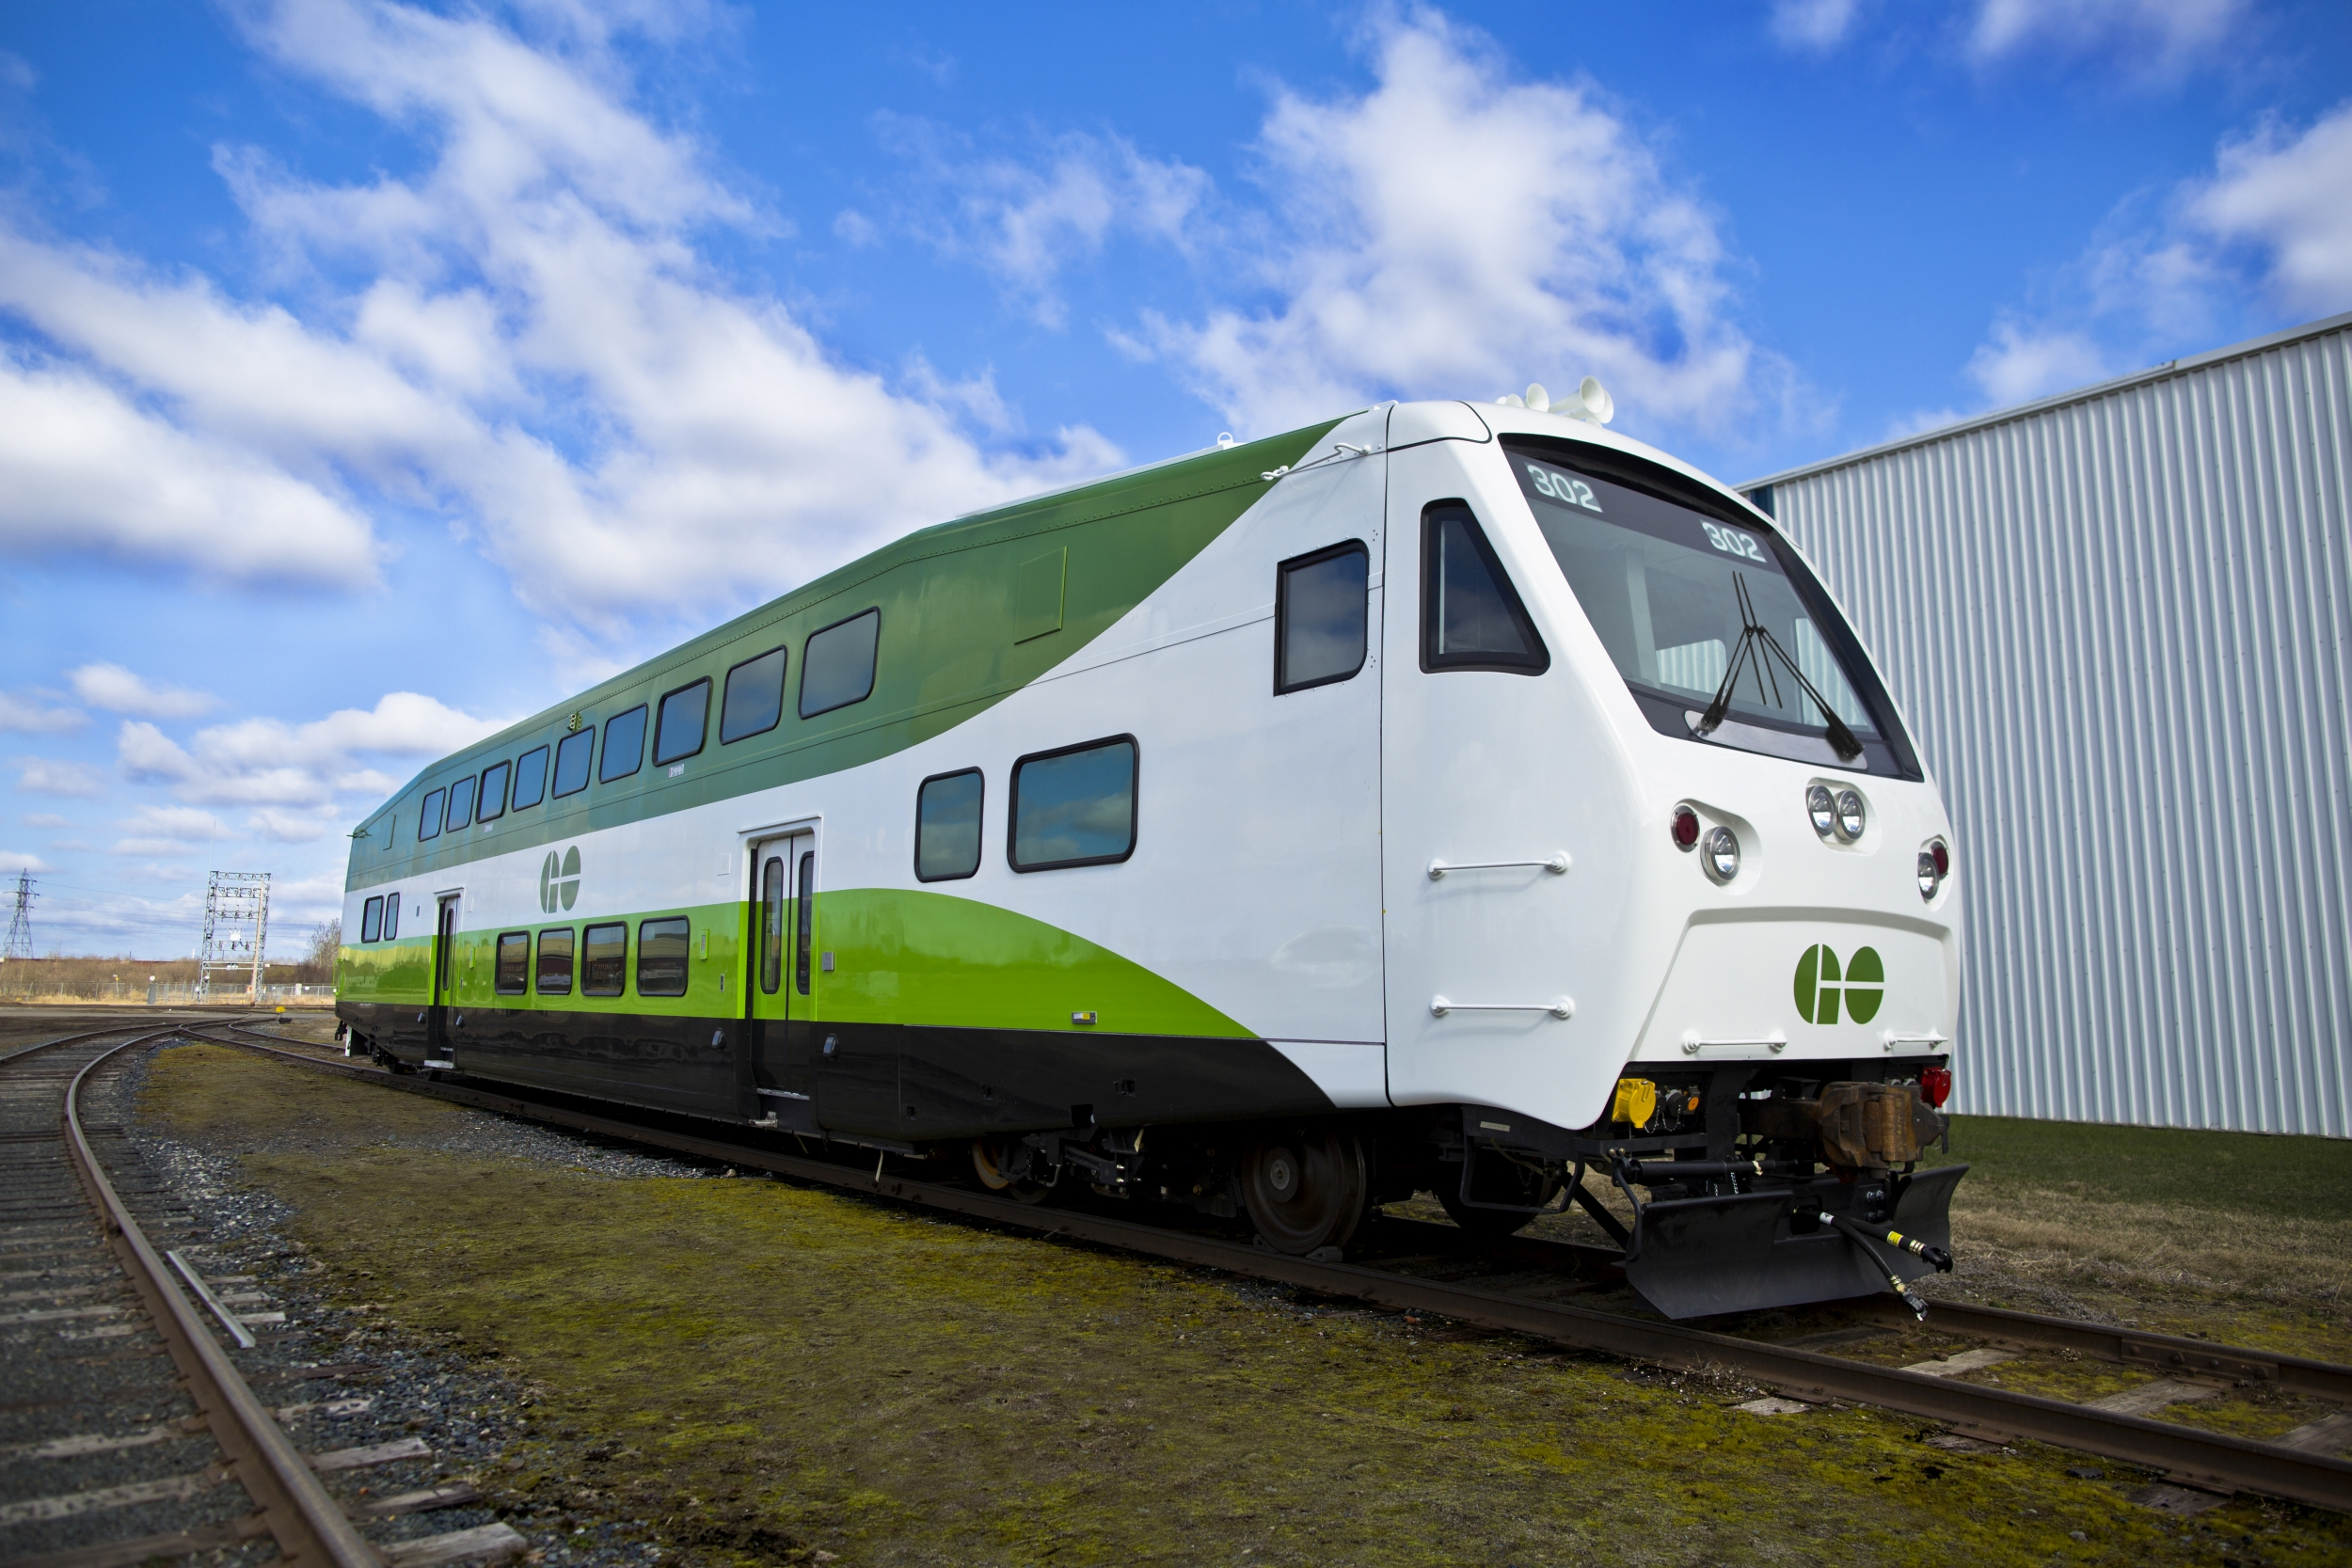 GO Transit rail safety campaign aims to provoke - 570 NEWS